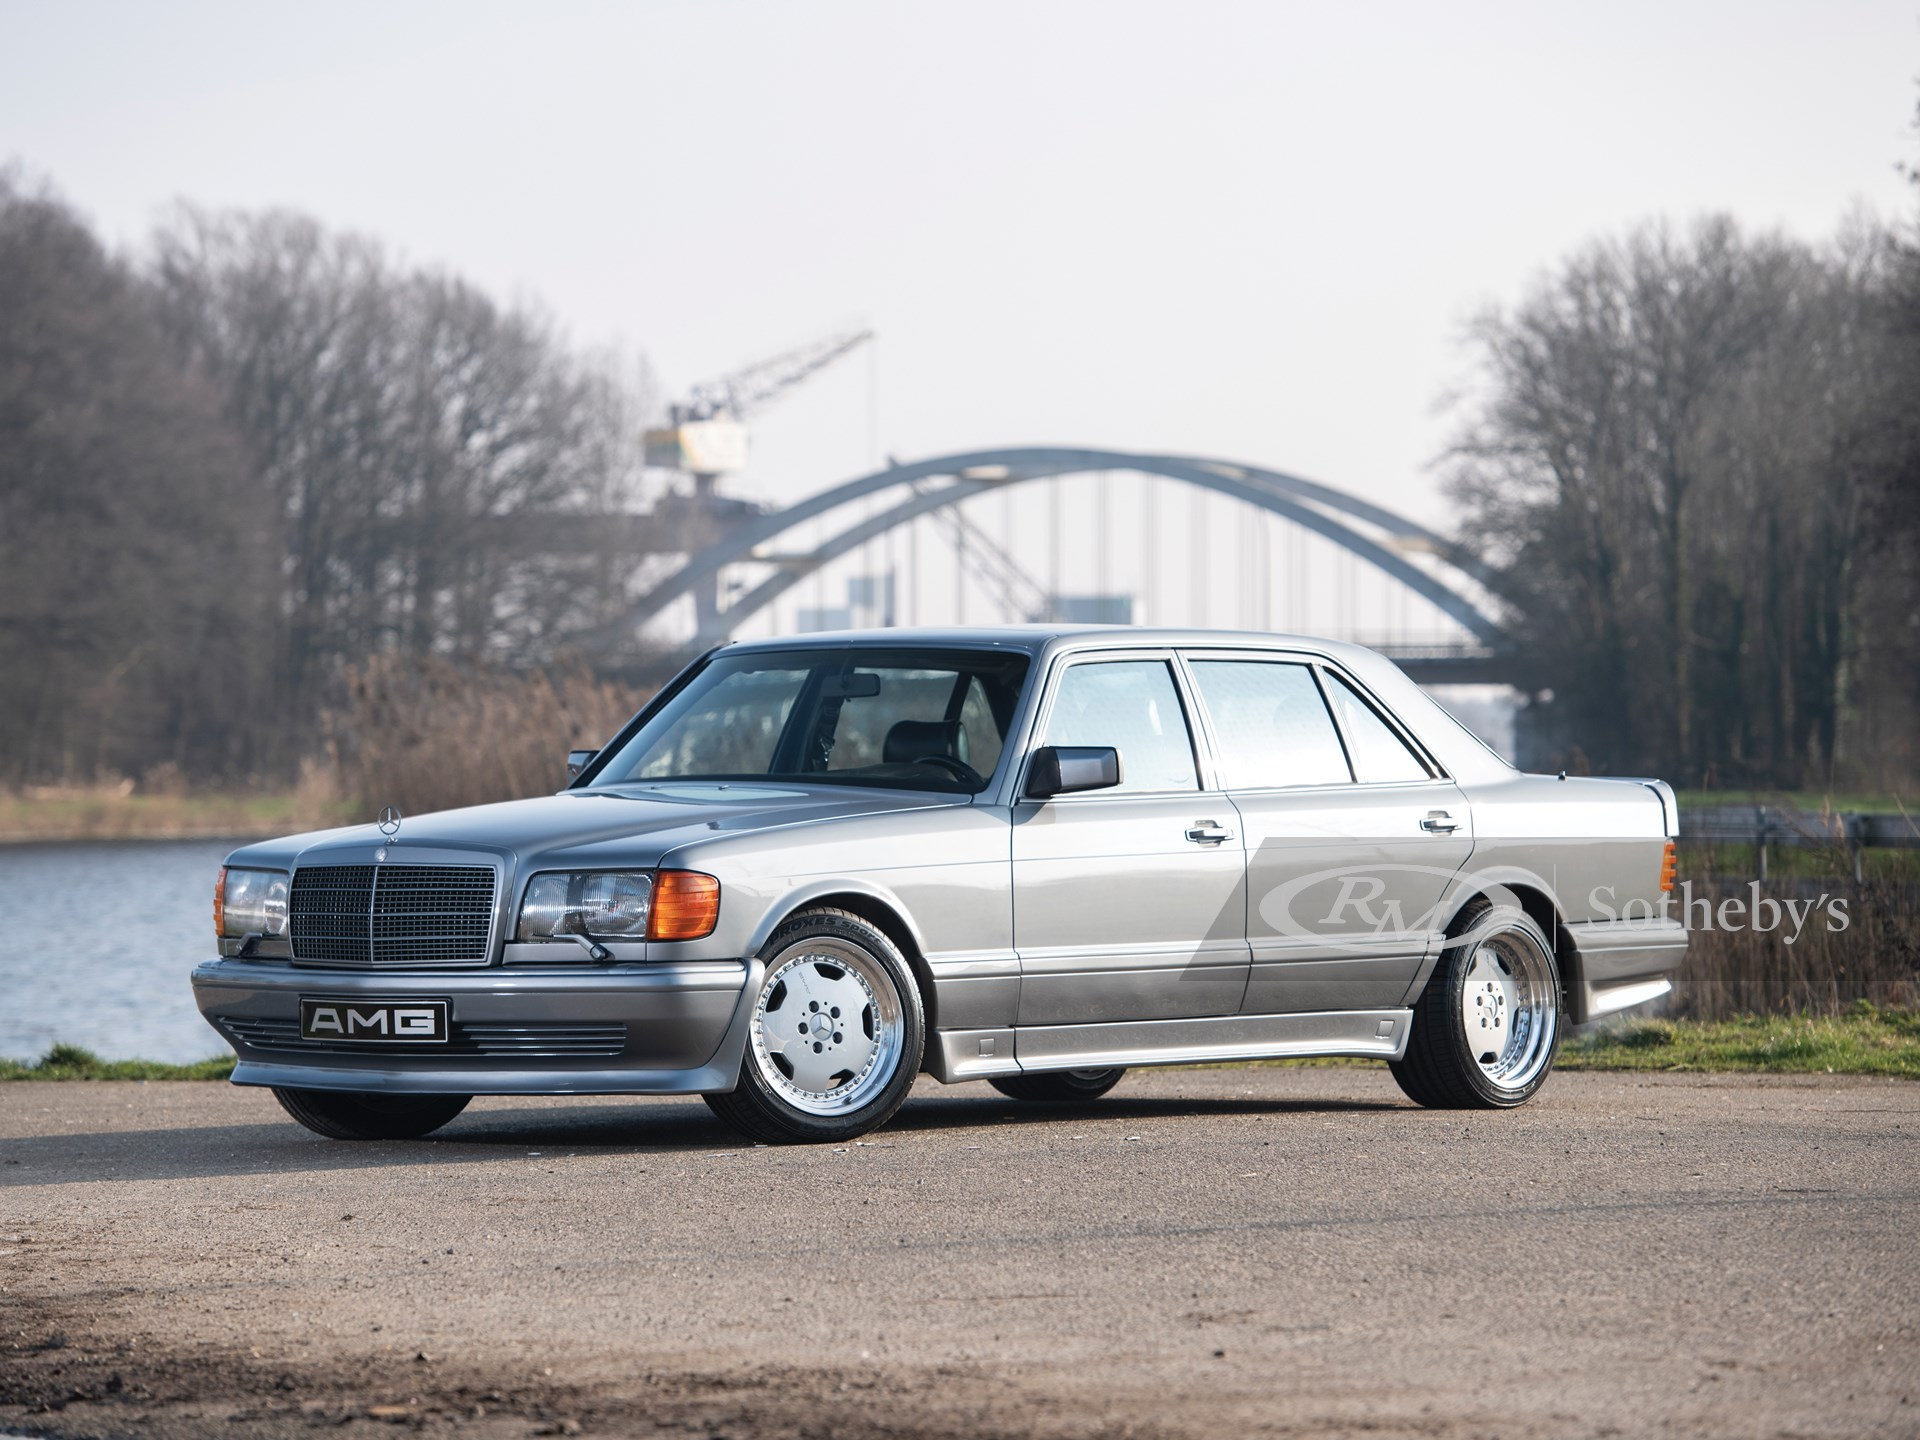 1989 Mercedes Benz 560 Sel 6 0 Amg The European Sale Featuring The Petitjean Collection Rm Online Only